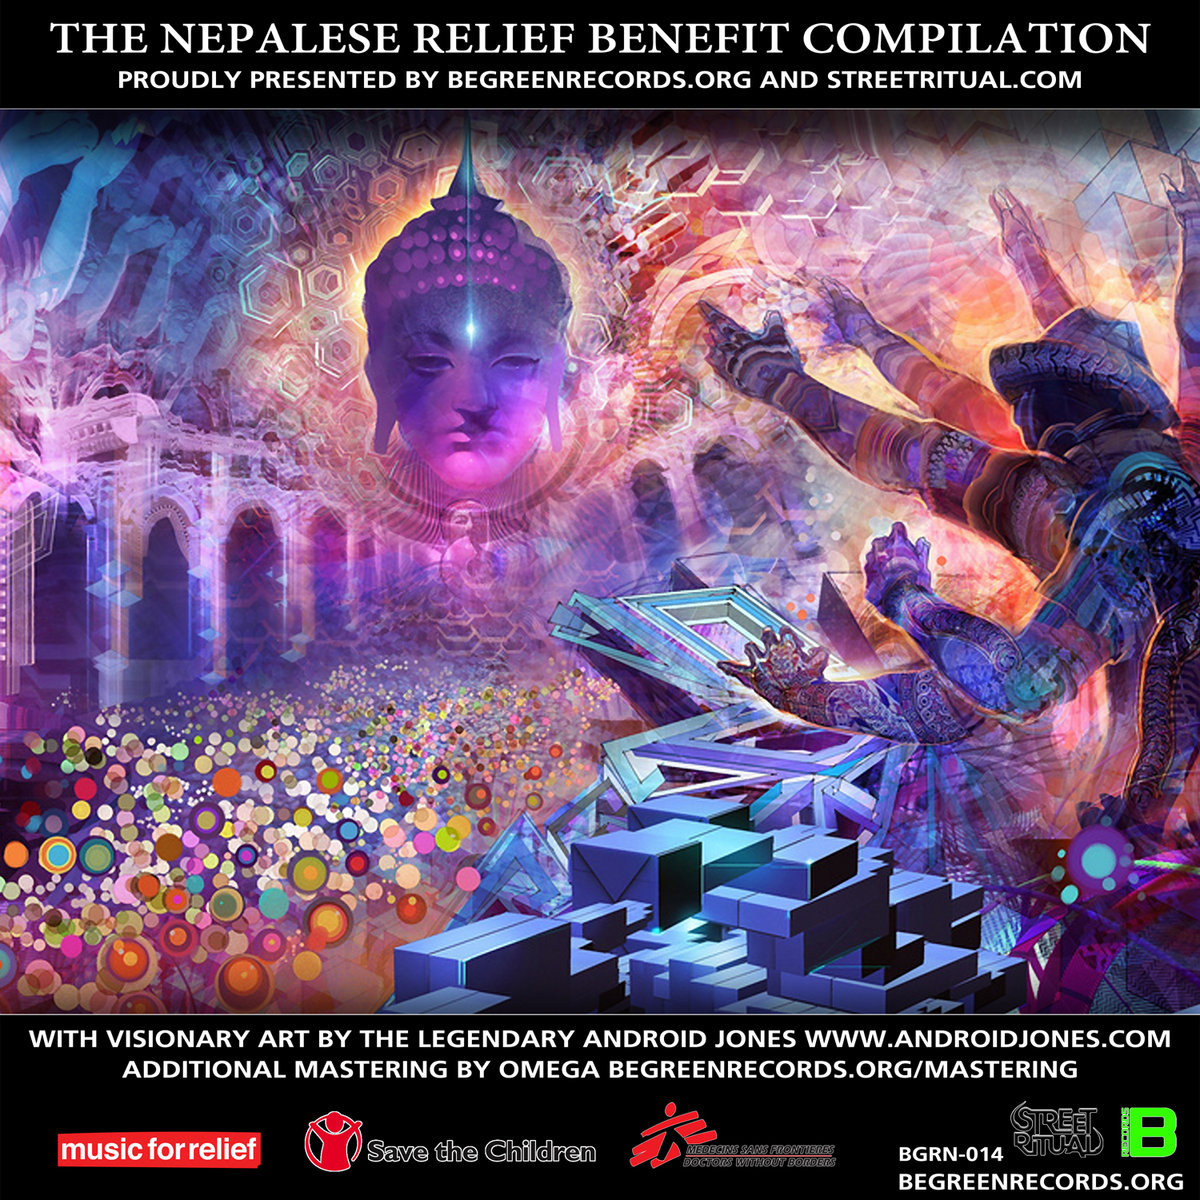 Ilko - The Sacred Star @ 'Various Artists - The Nepalese Relief Benefit Compilation' album (bass, electronic)